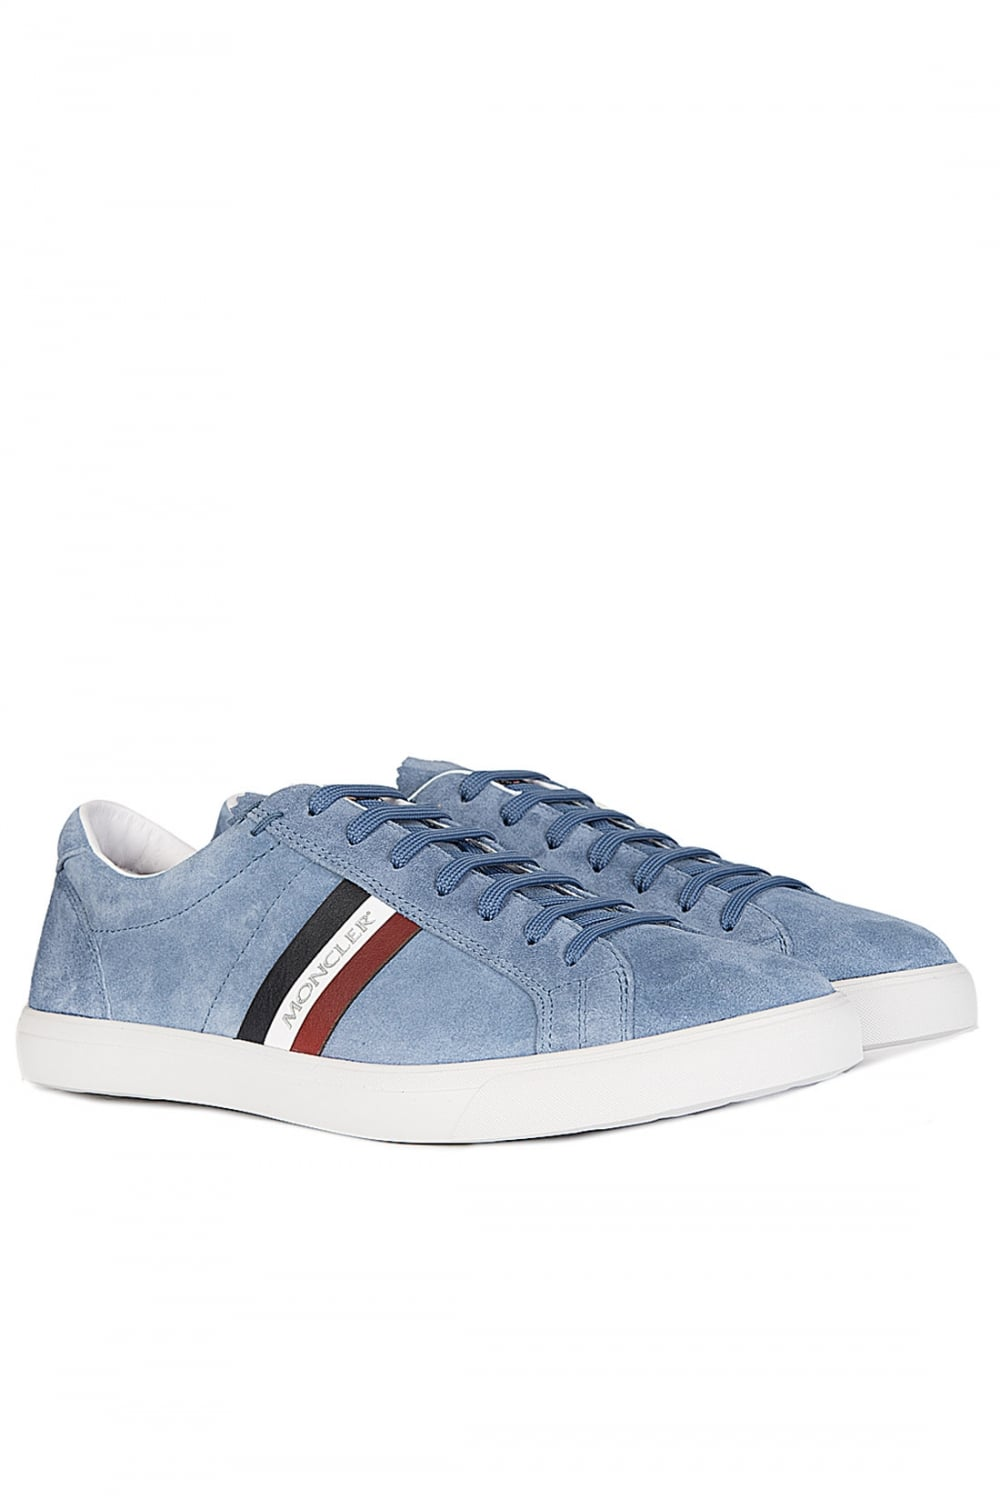 5680667a3dc21 MONCLER Moncler Monaco Blue Suede - Clothing from Circle Fashion UK